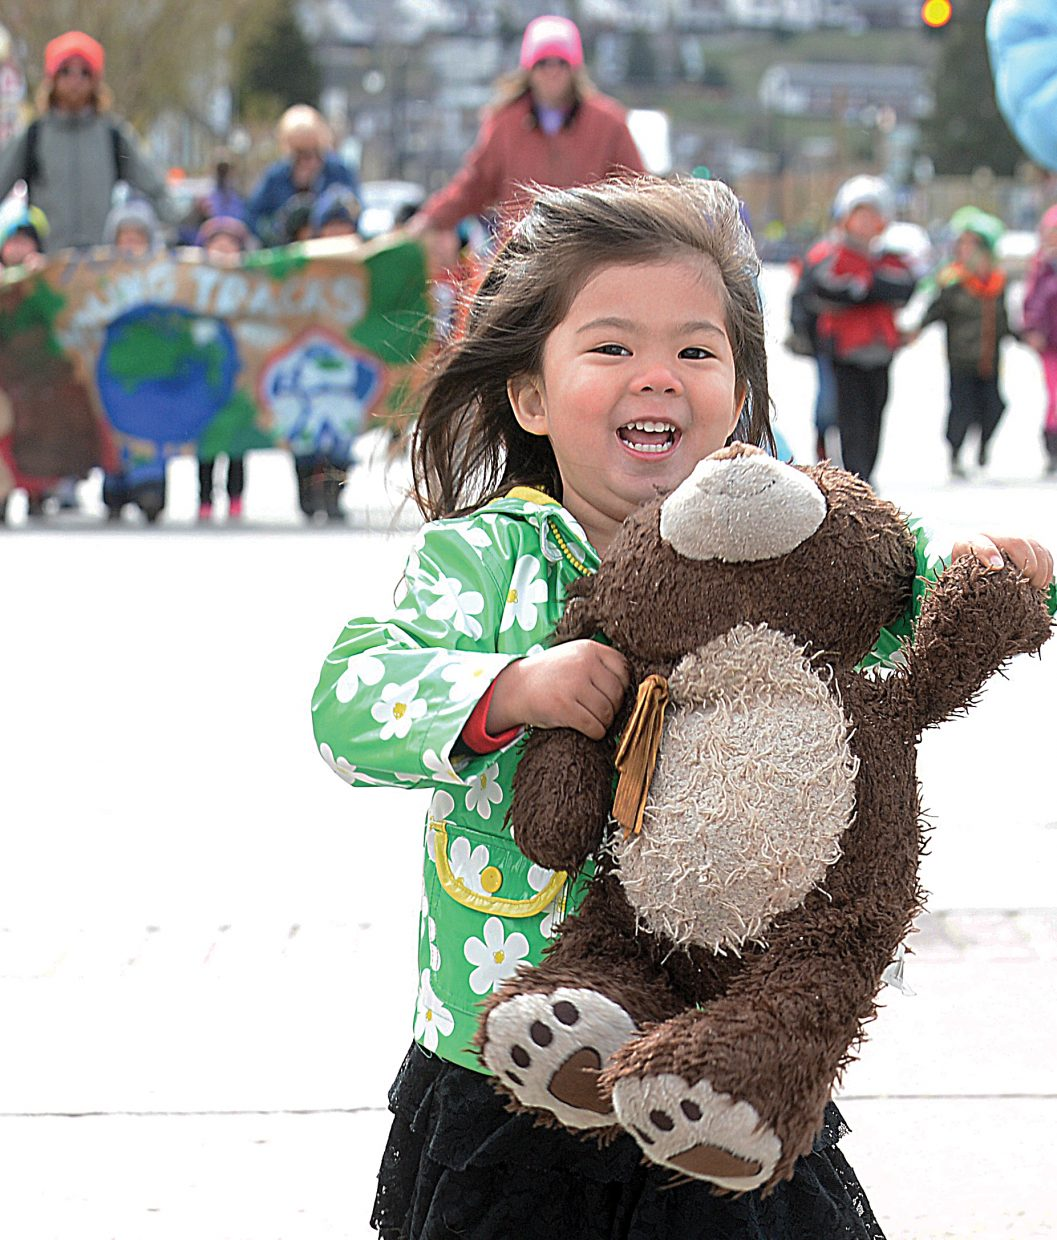 Kailyn Milne took her favorite teddy bear to the Children's Parade on Wednesday morning on Lincoln Avenue. The parade was part of the celebration of the Month of the Young Child.